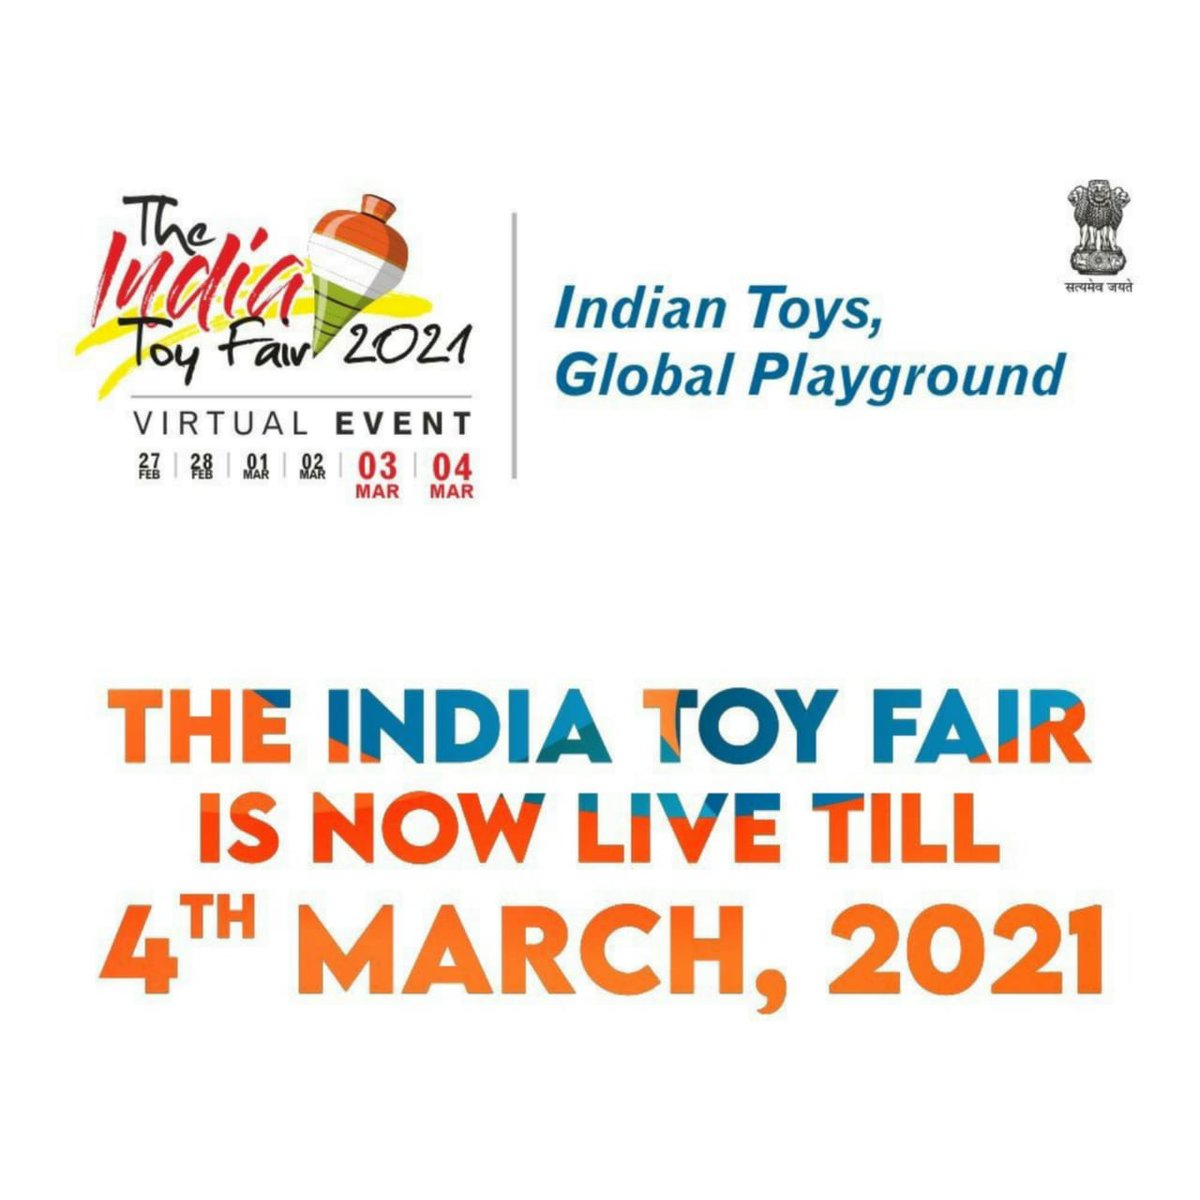 We were about to say goodbye, but then your love stopped us! On popular demand, #TheIndiaToyFair 2021 has been extended till 4th March 2021! Join the toy adventure, visit  now! #Vocal4LocalToys